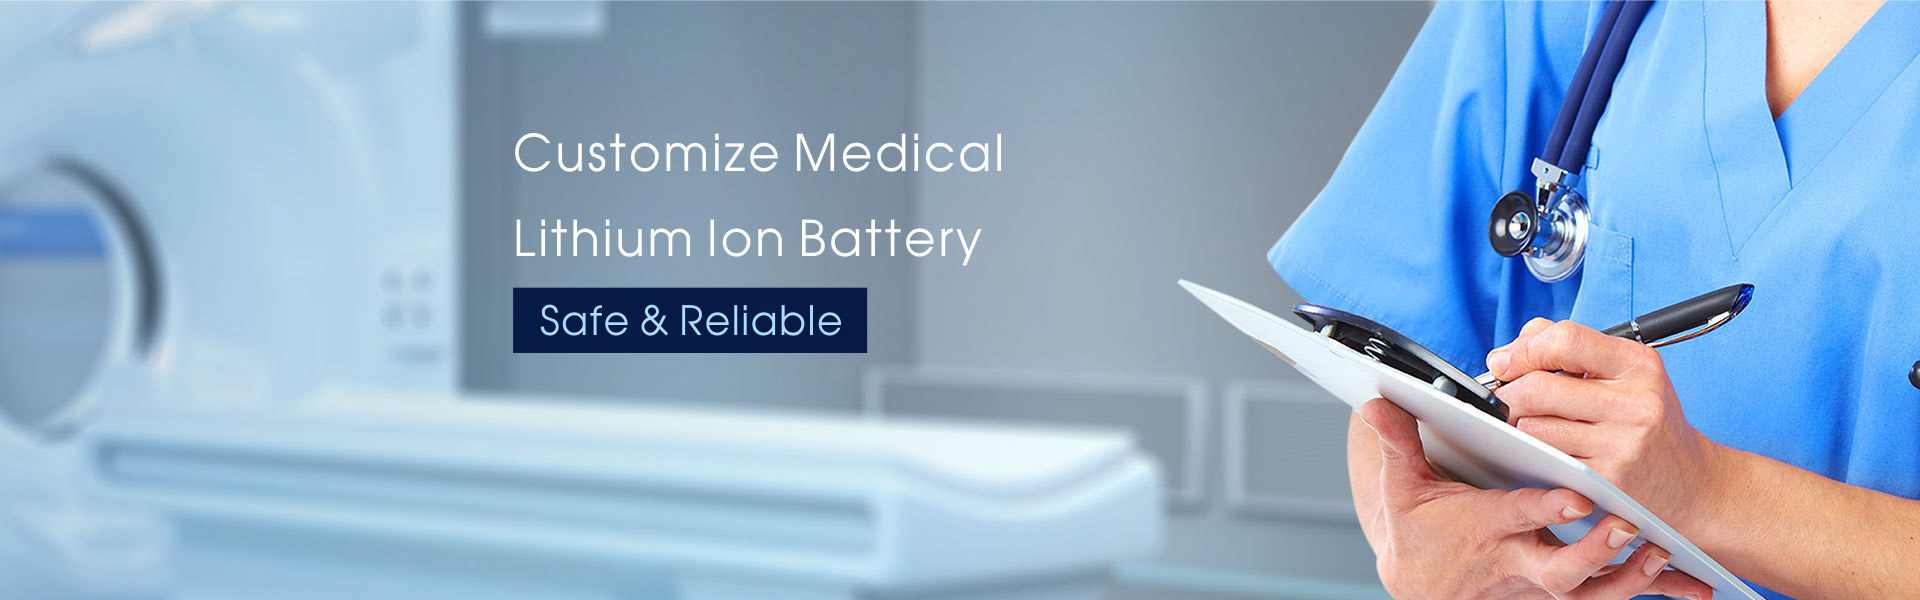 Customized Medical Lithium Ion Battery